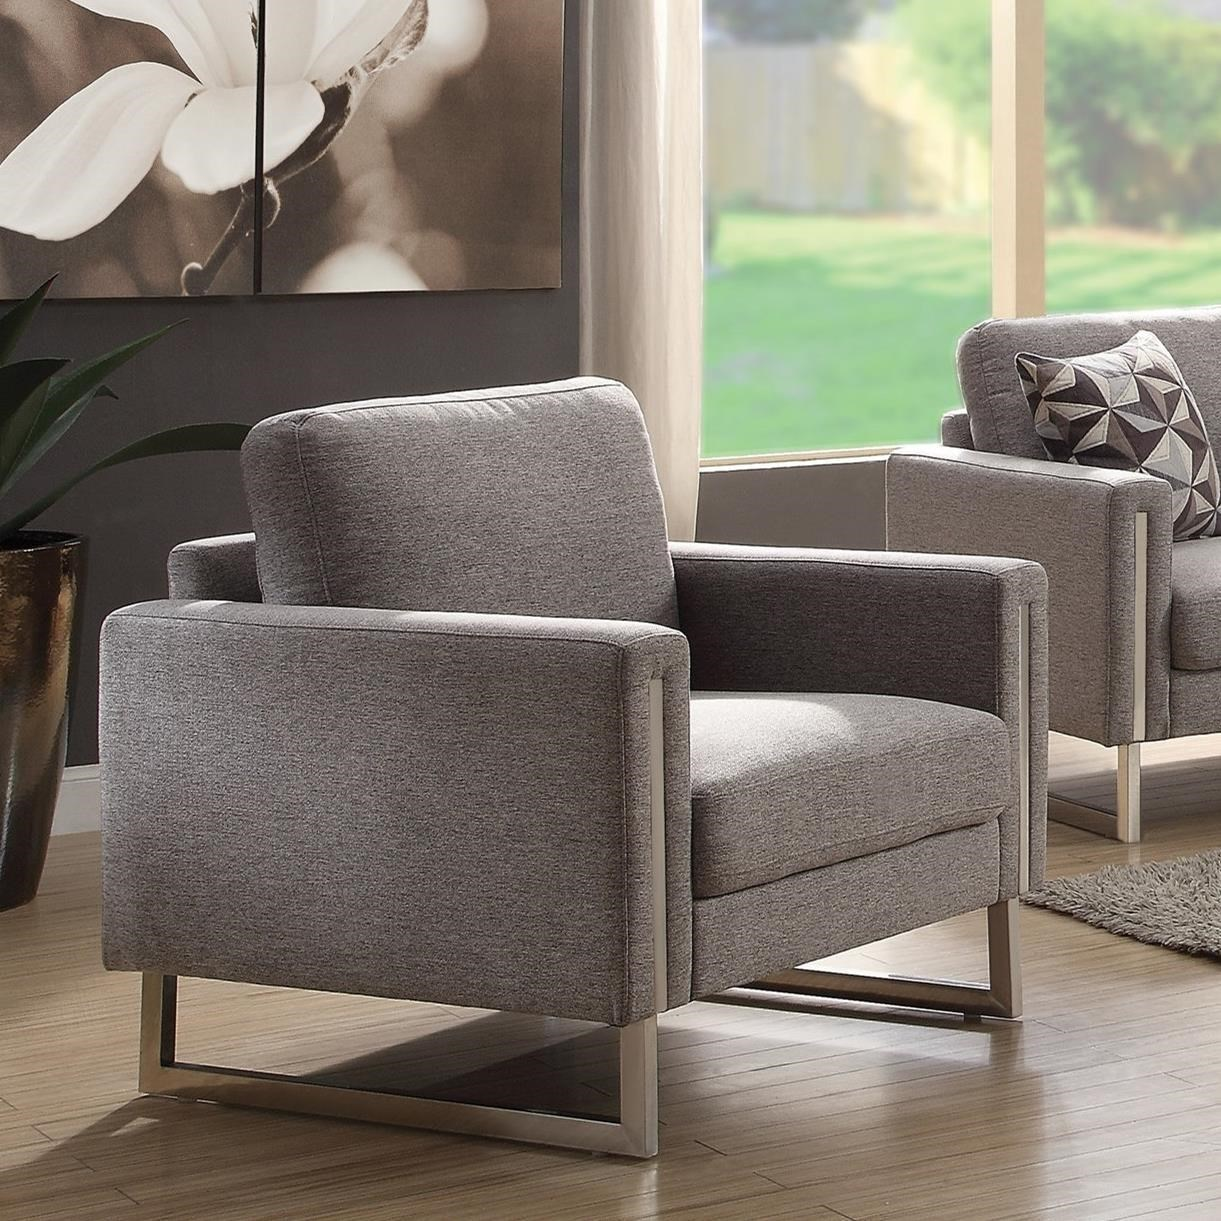 Coaster Stellan Upholstered Chair with UShaped Legs